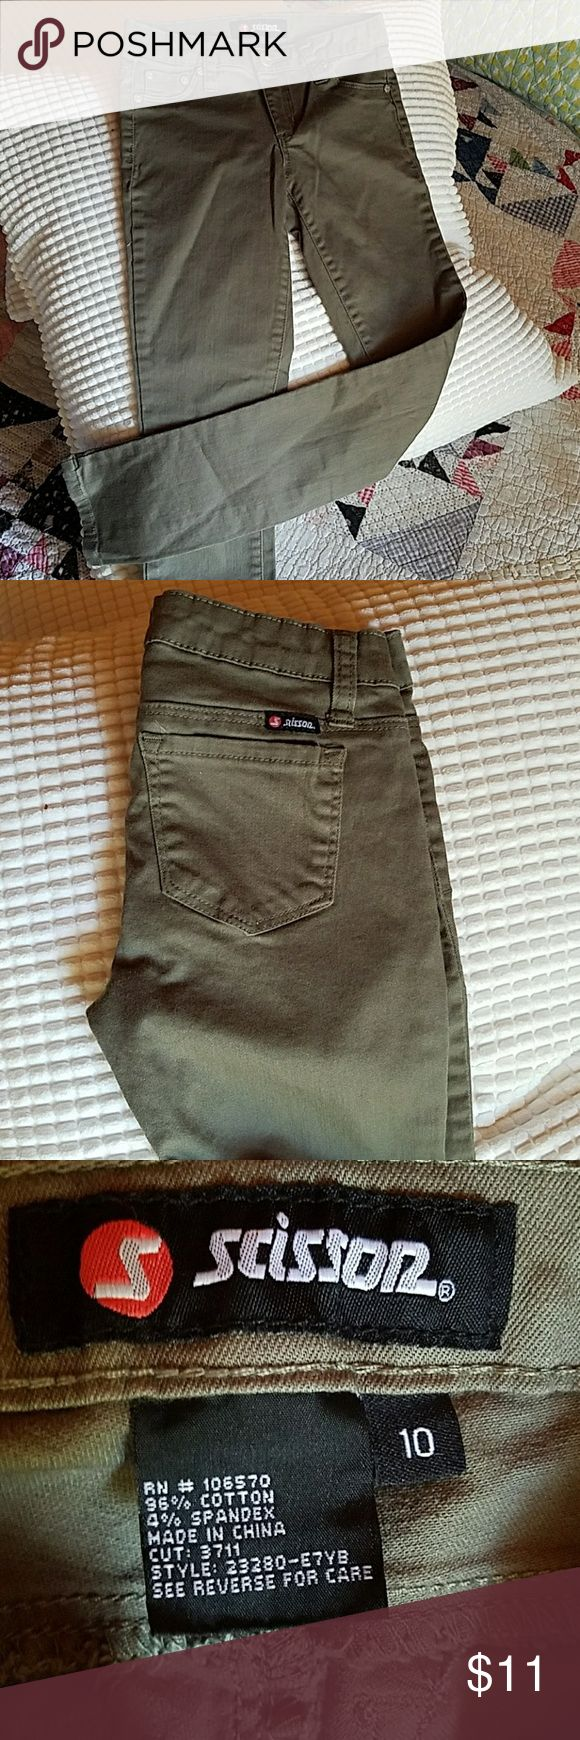 Girls Scissor khaki green jeans Never worn, size 10 scissor Bottoms Casual